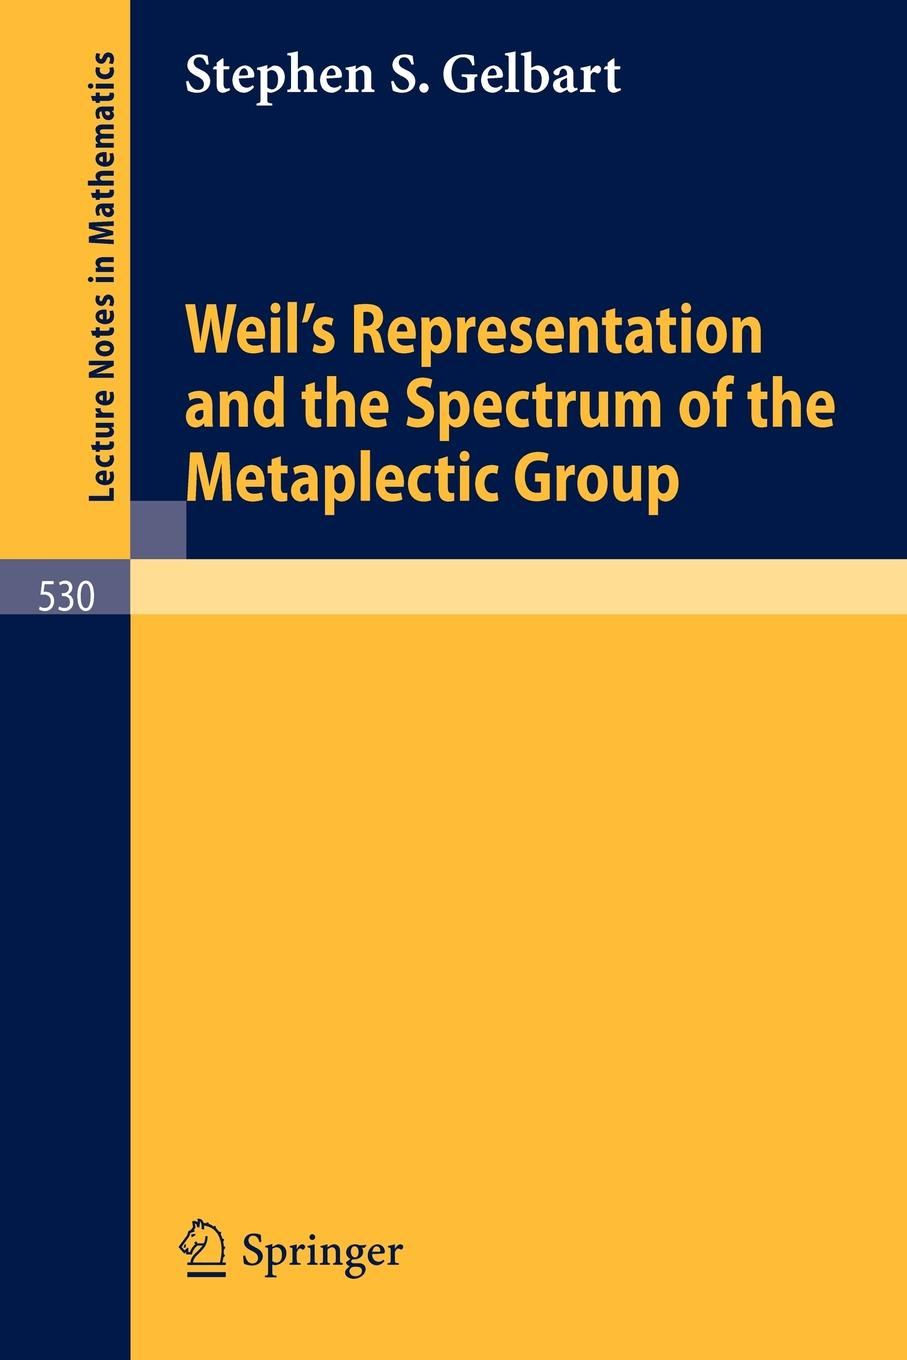 Stephen S. Gelbart Weil's Representation and the Spectrum of the Metaplectic Group